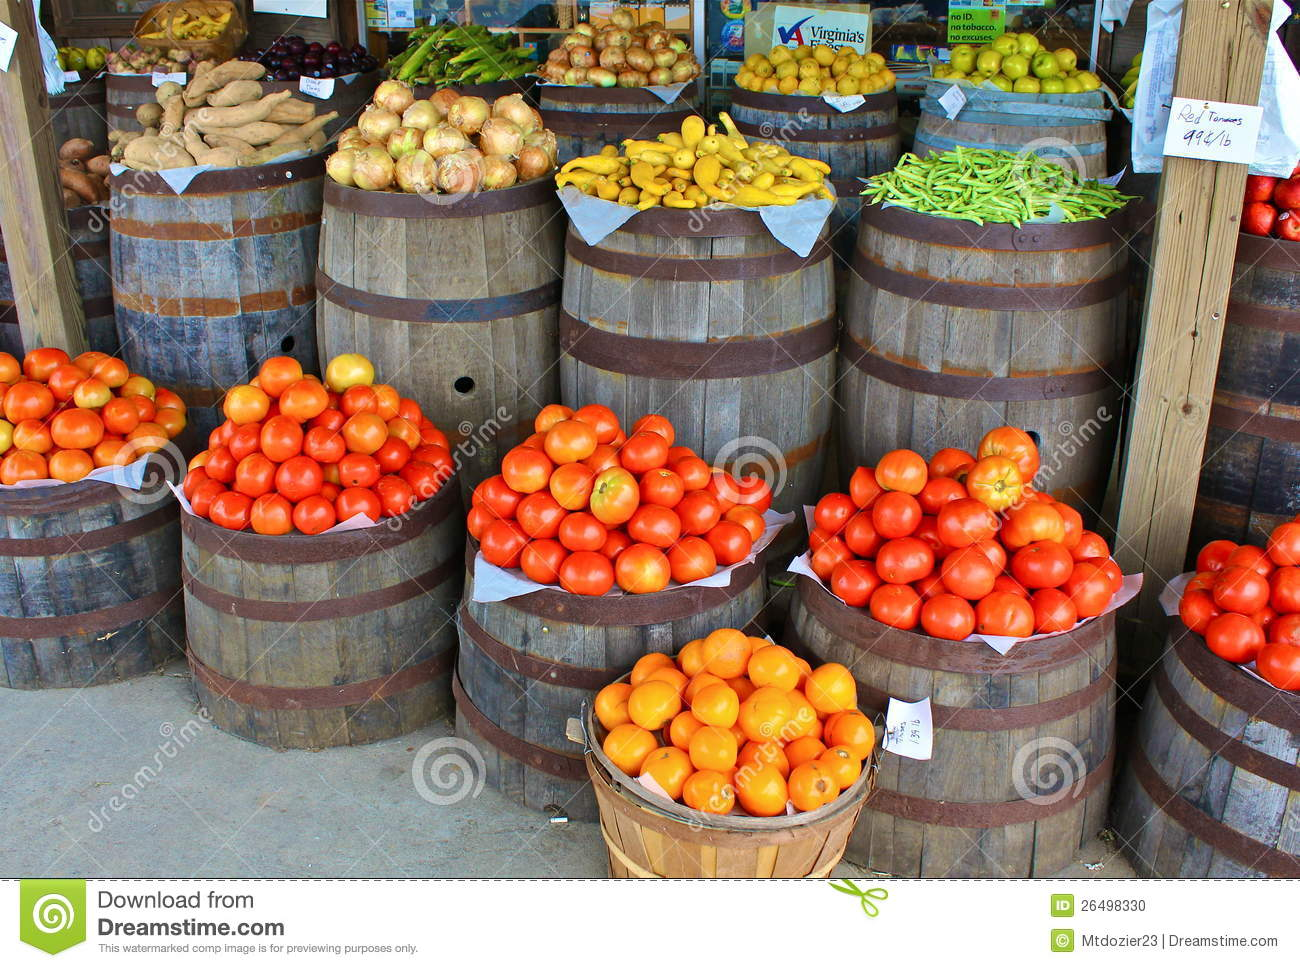 Tomatoes and other produce form a colorful display in front of an old ...